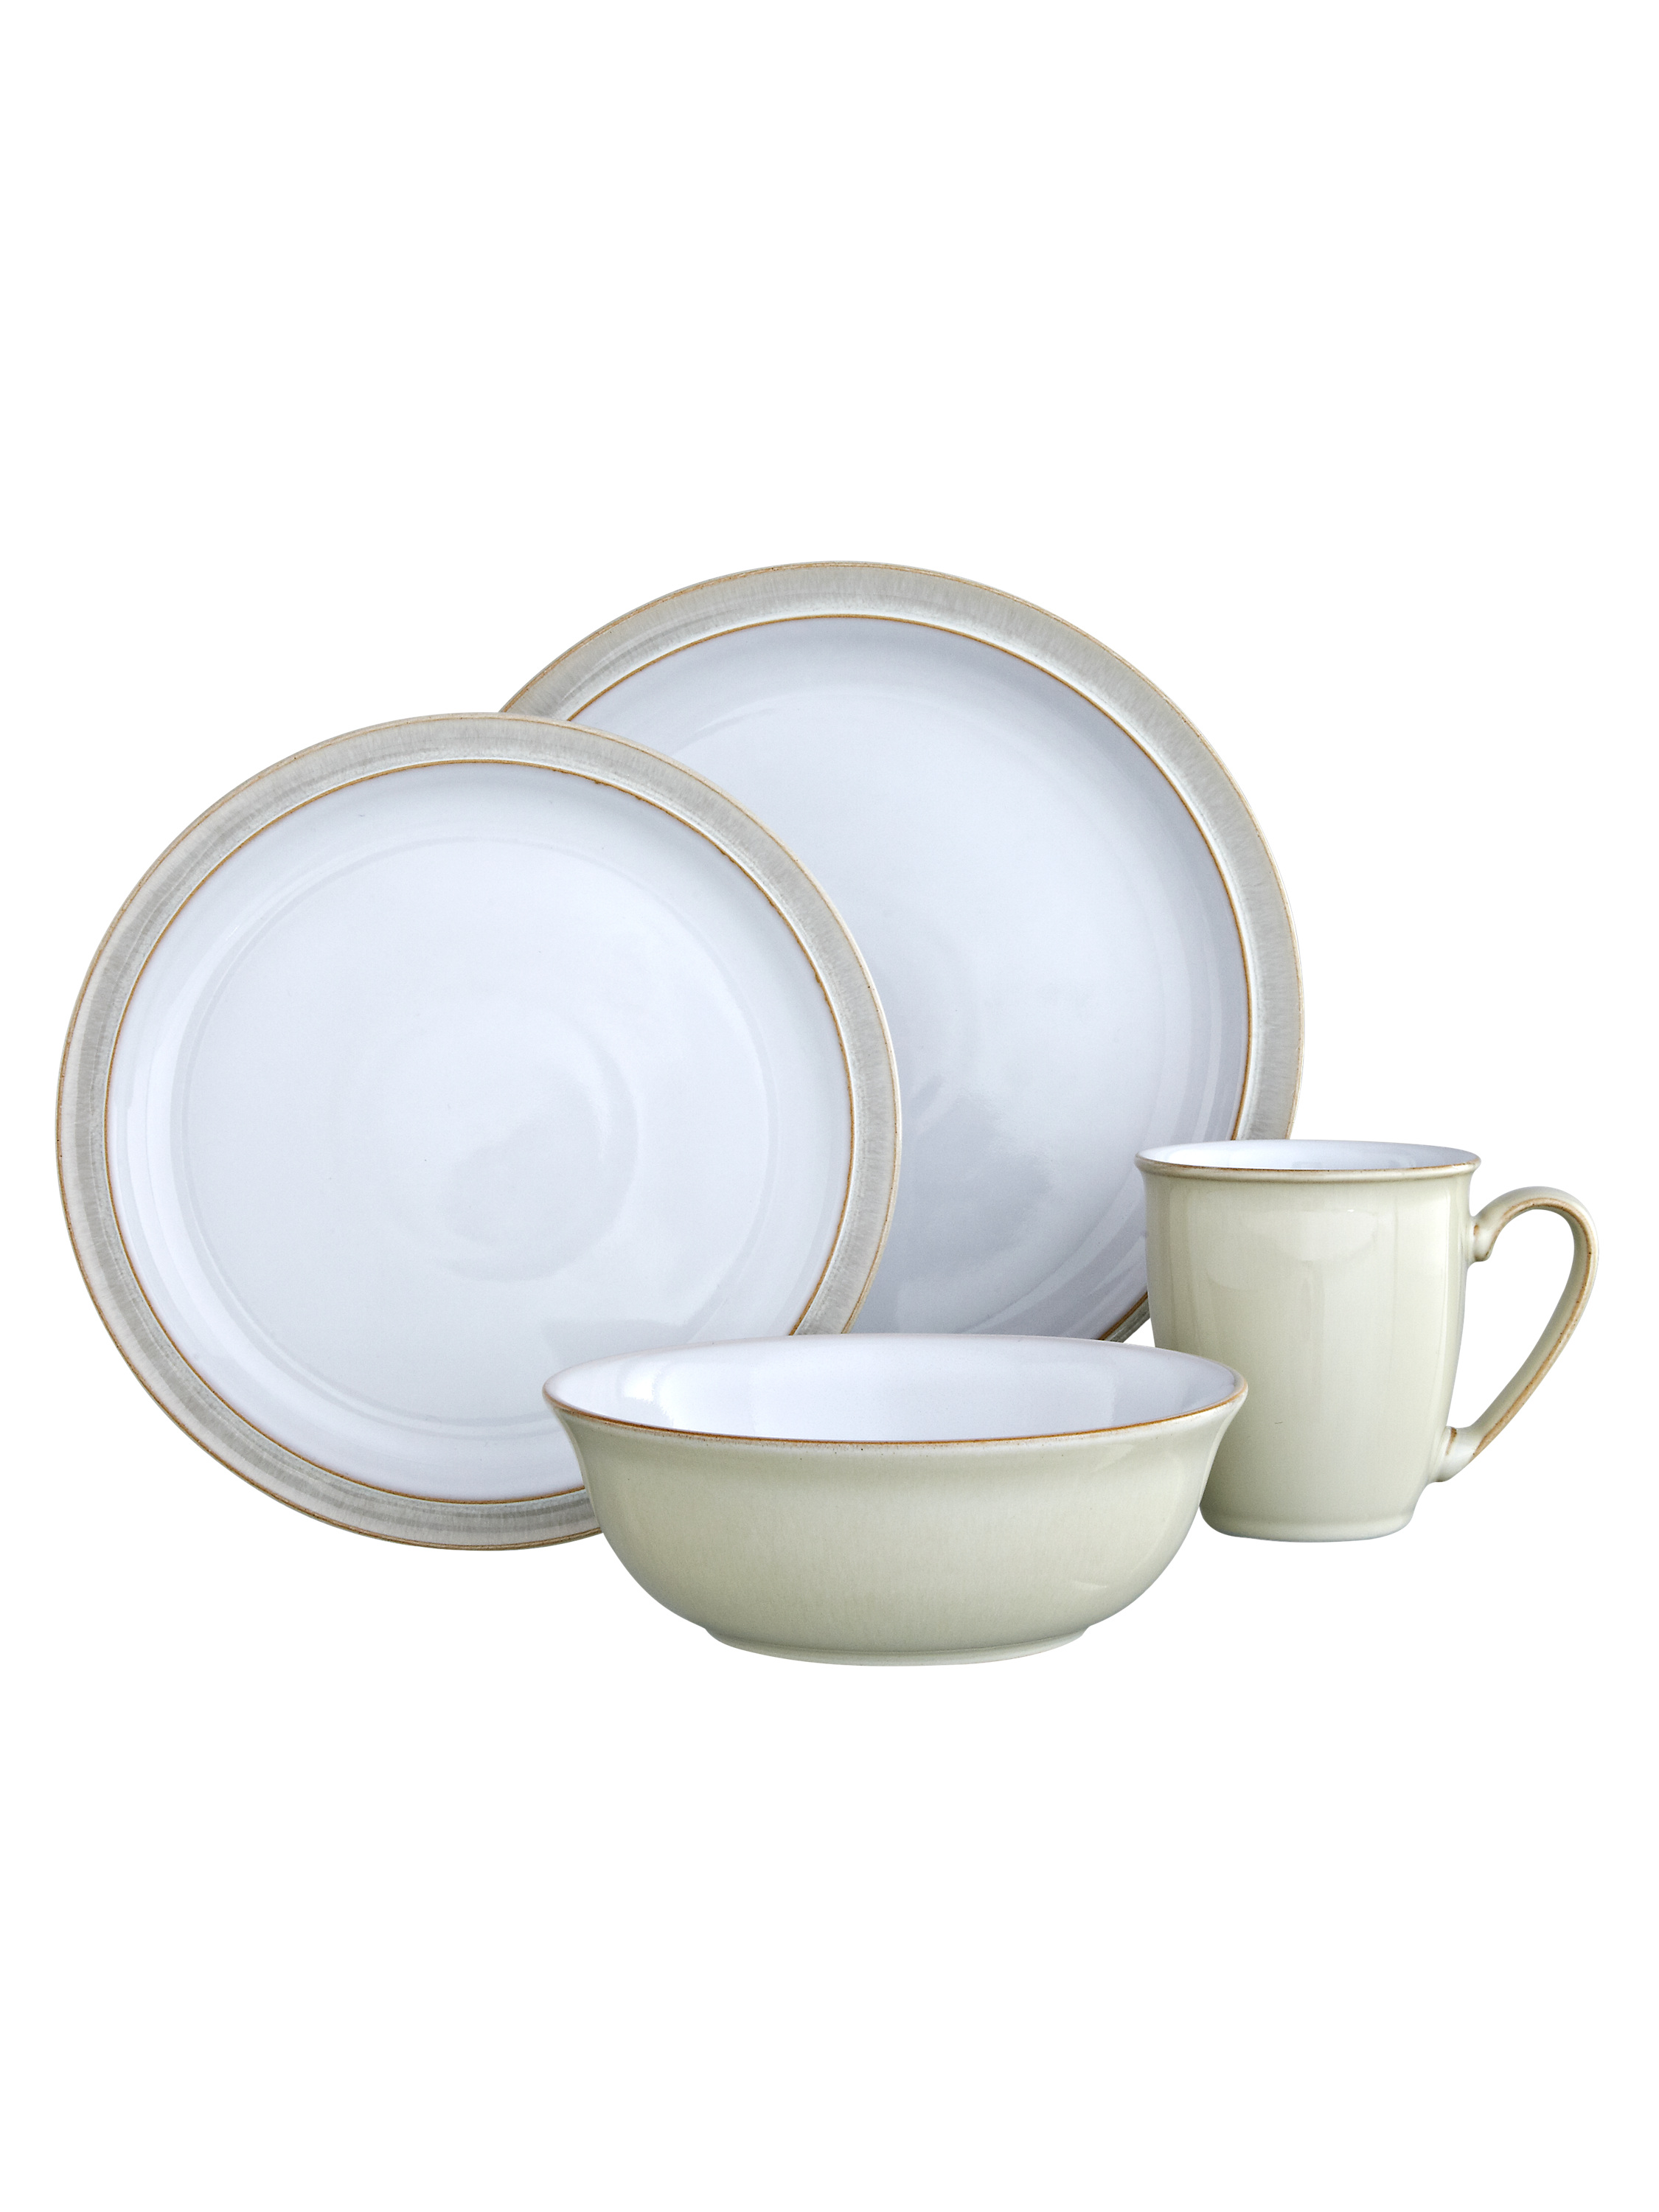 25% off selected Denby